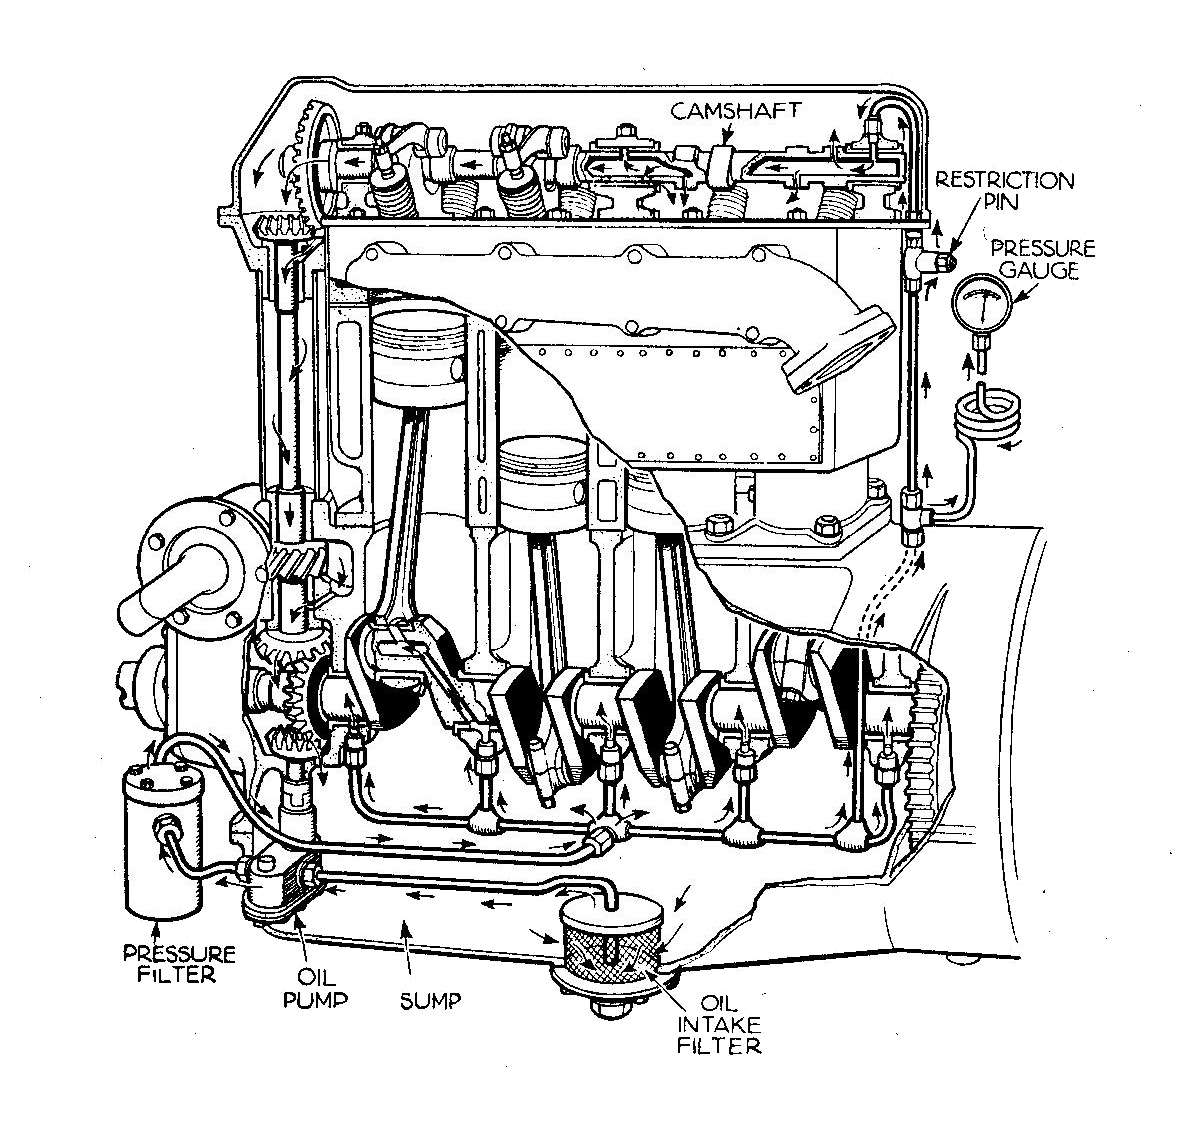 Oil pump  internal  bustion engine on marine ignition switch diagram